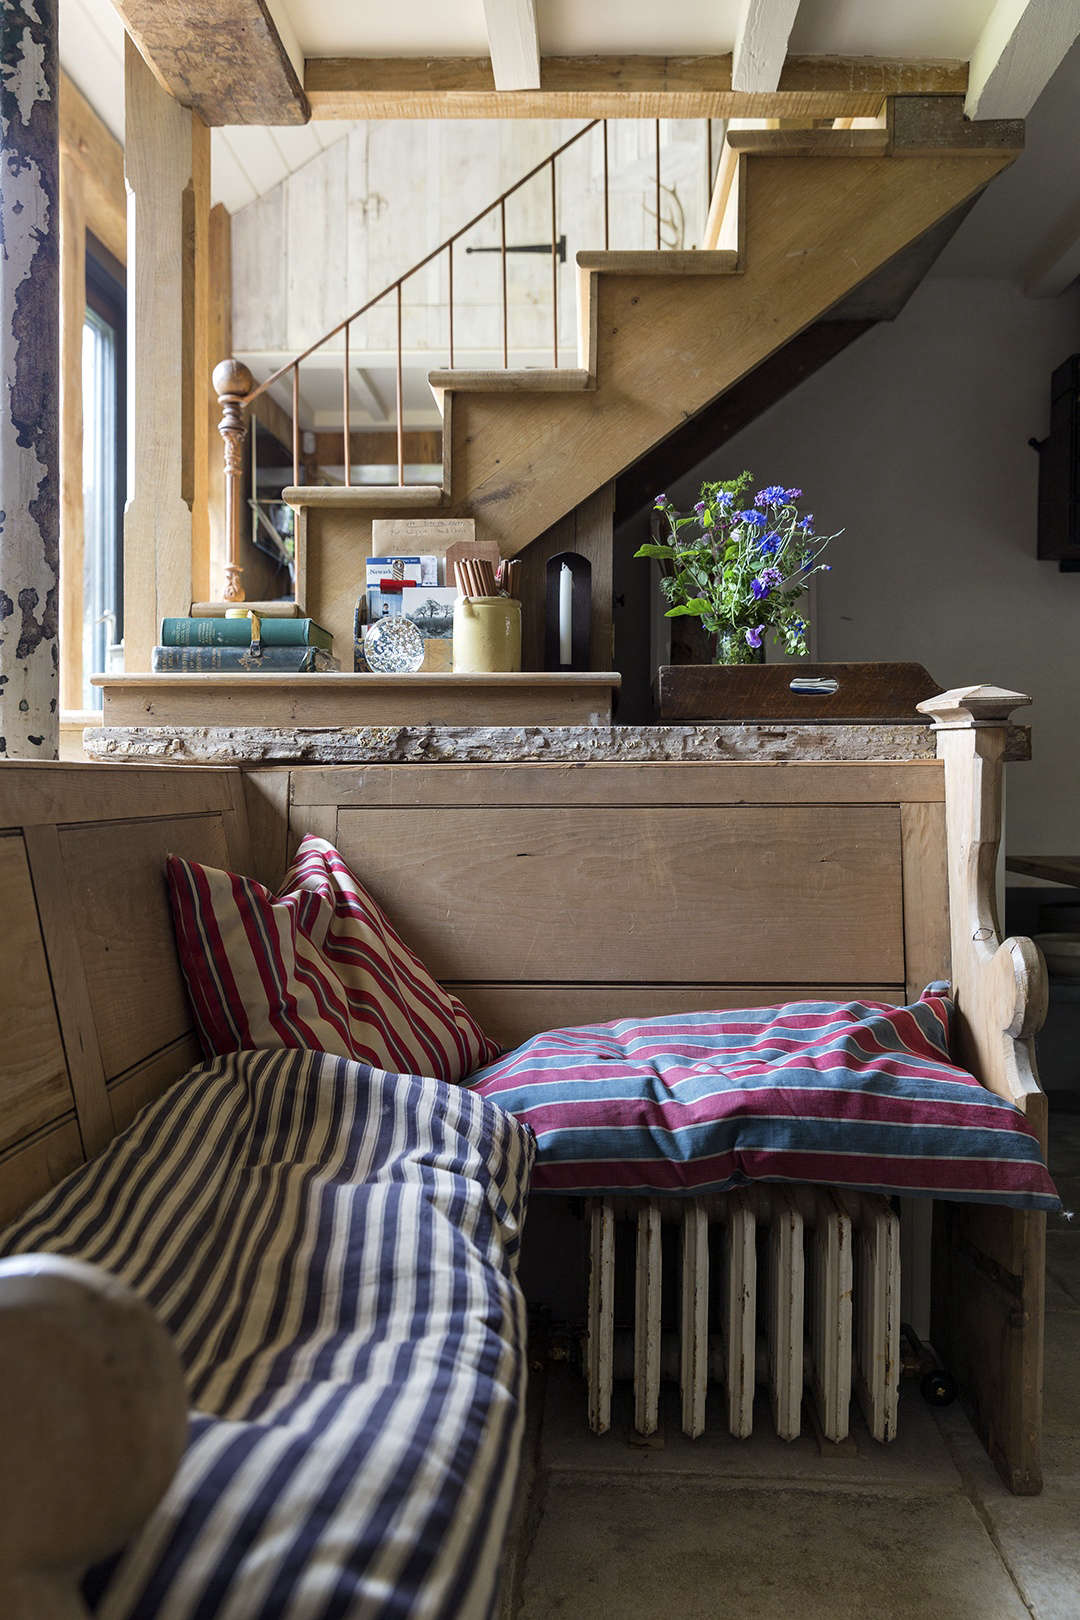 A stairway leads to the loft sleeping areas of the barn.